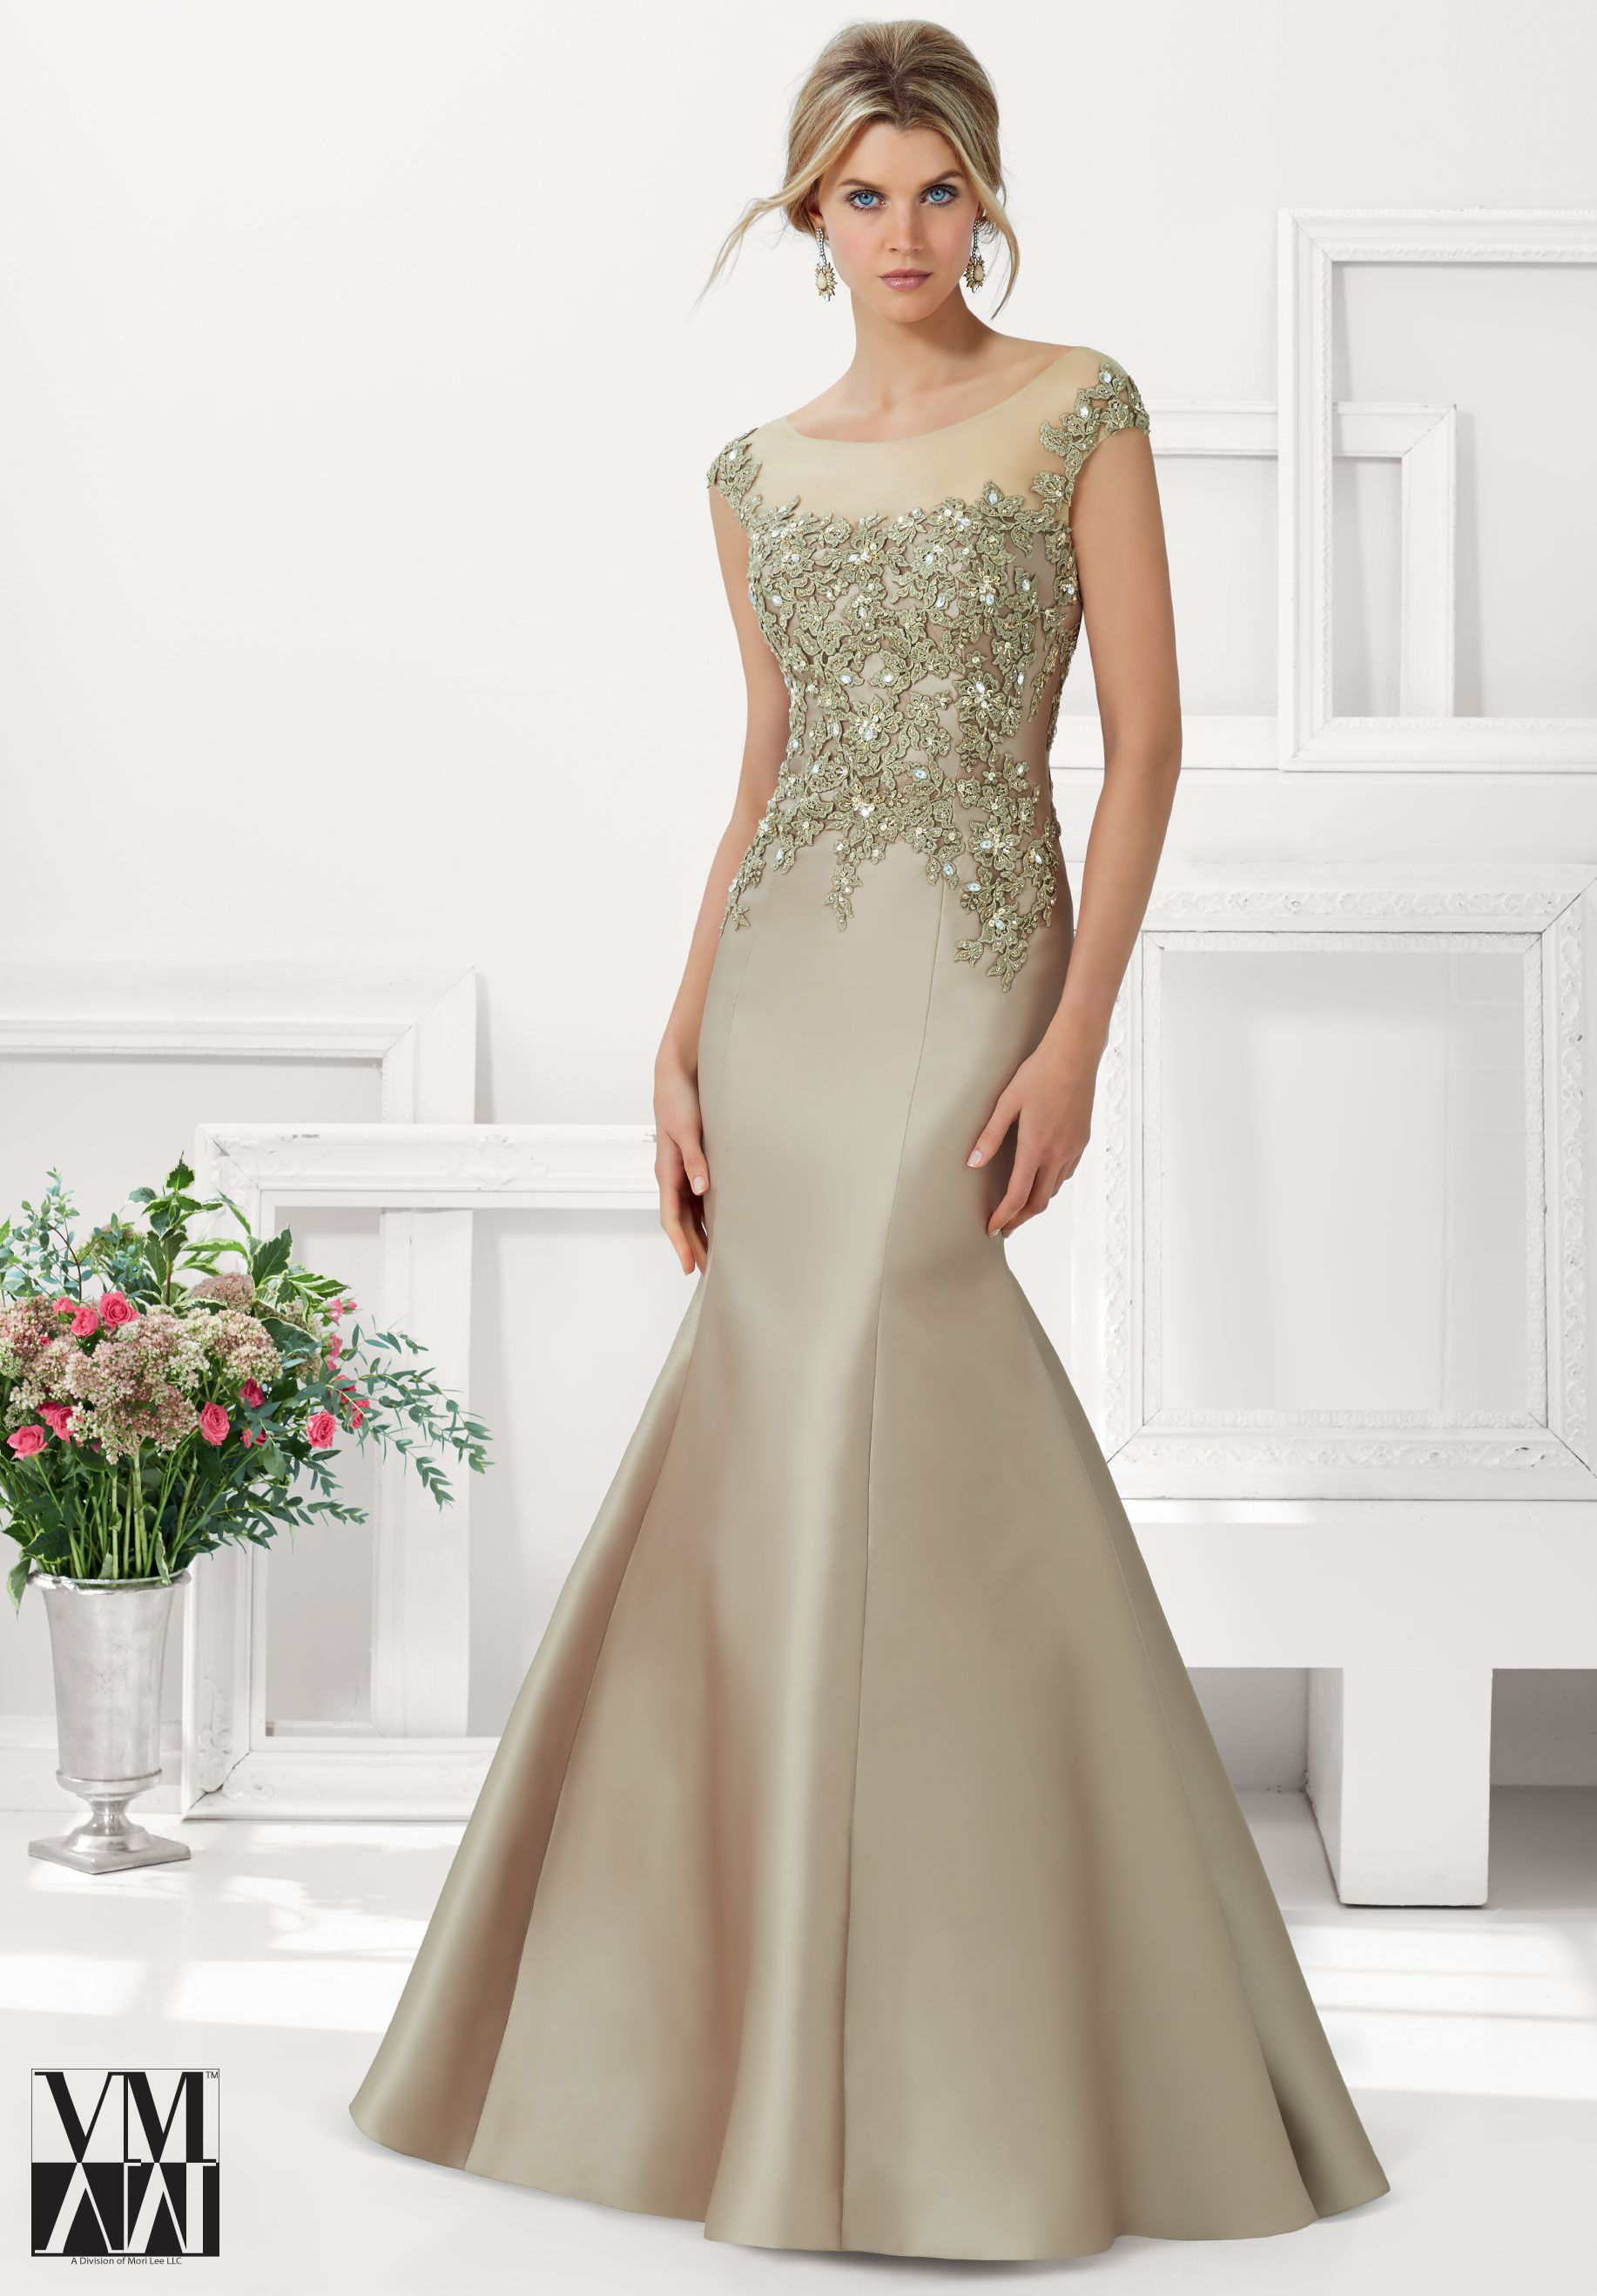 Evening Gowns / Dresses Style 71102: Larissa Satin with Beaded Lace ...